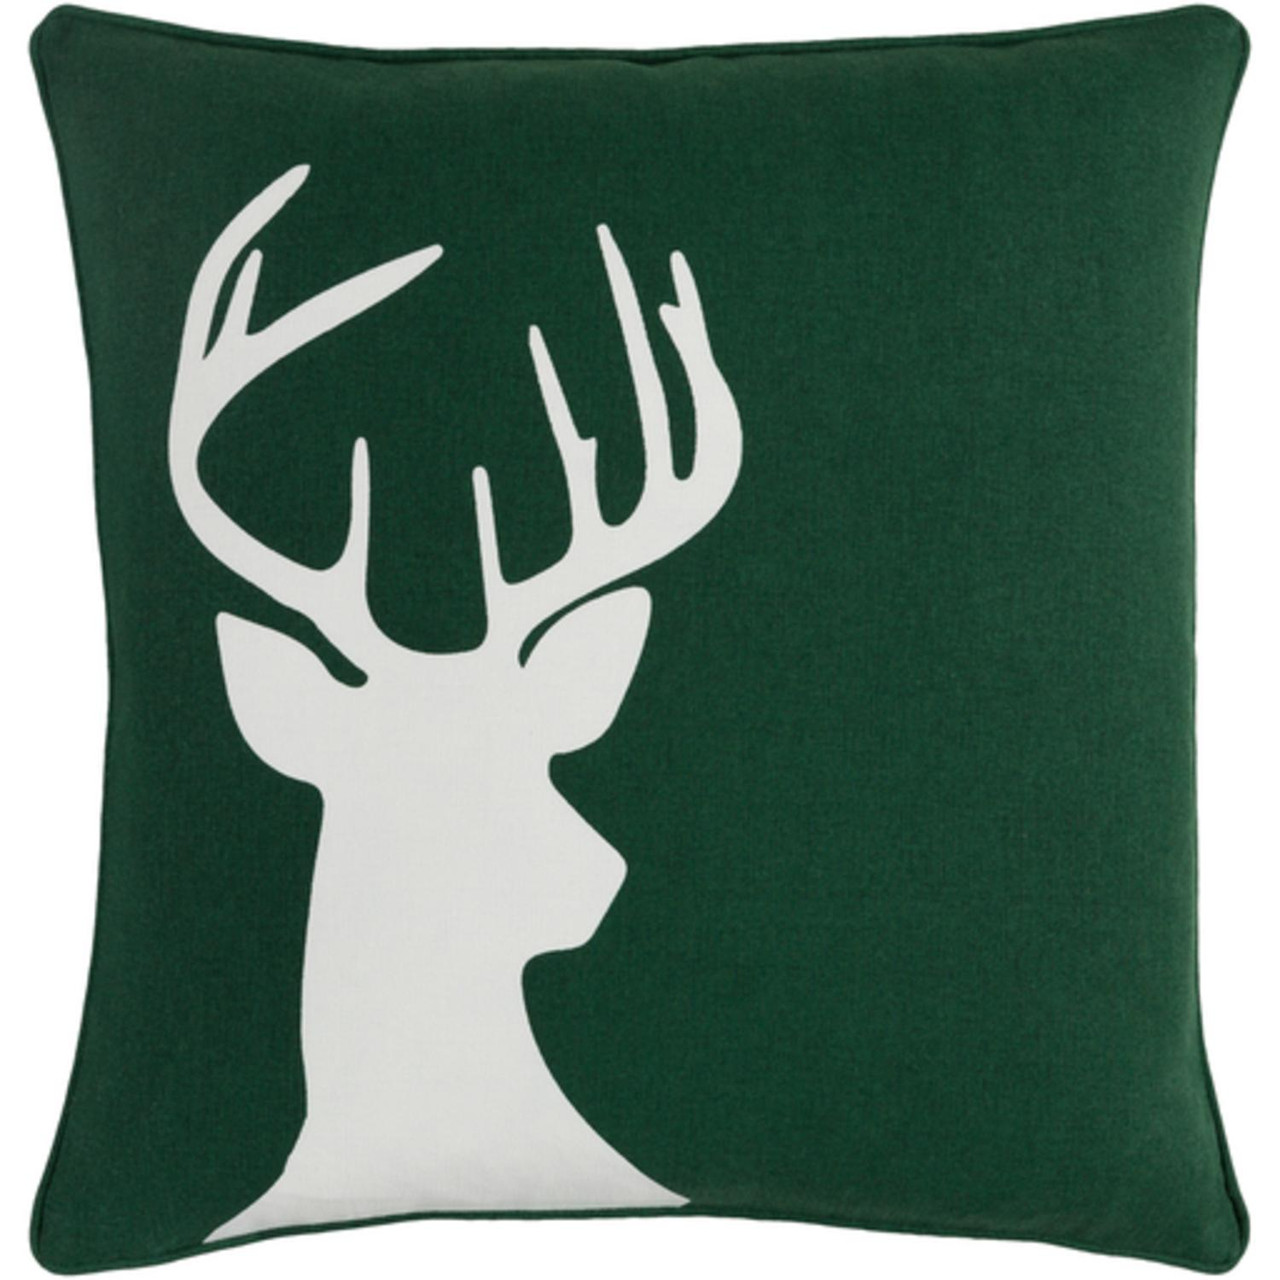 18 Snow White Forest Green Decorative Country Rustic Holiday Throw Pillow Cover Christmas Central